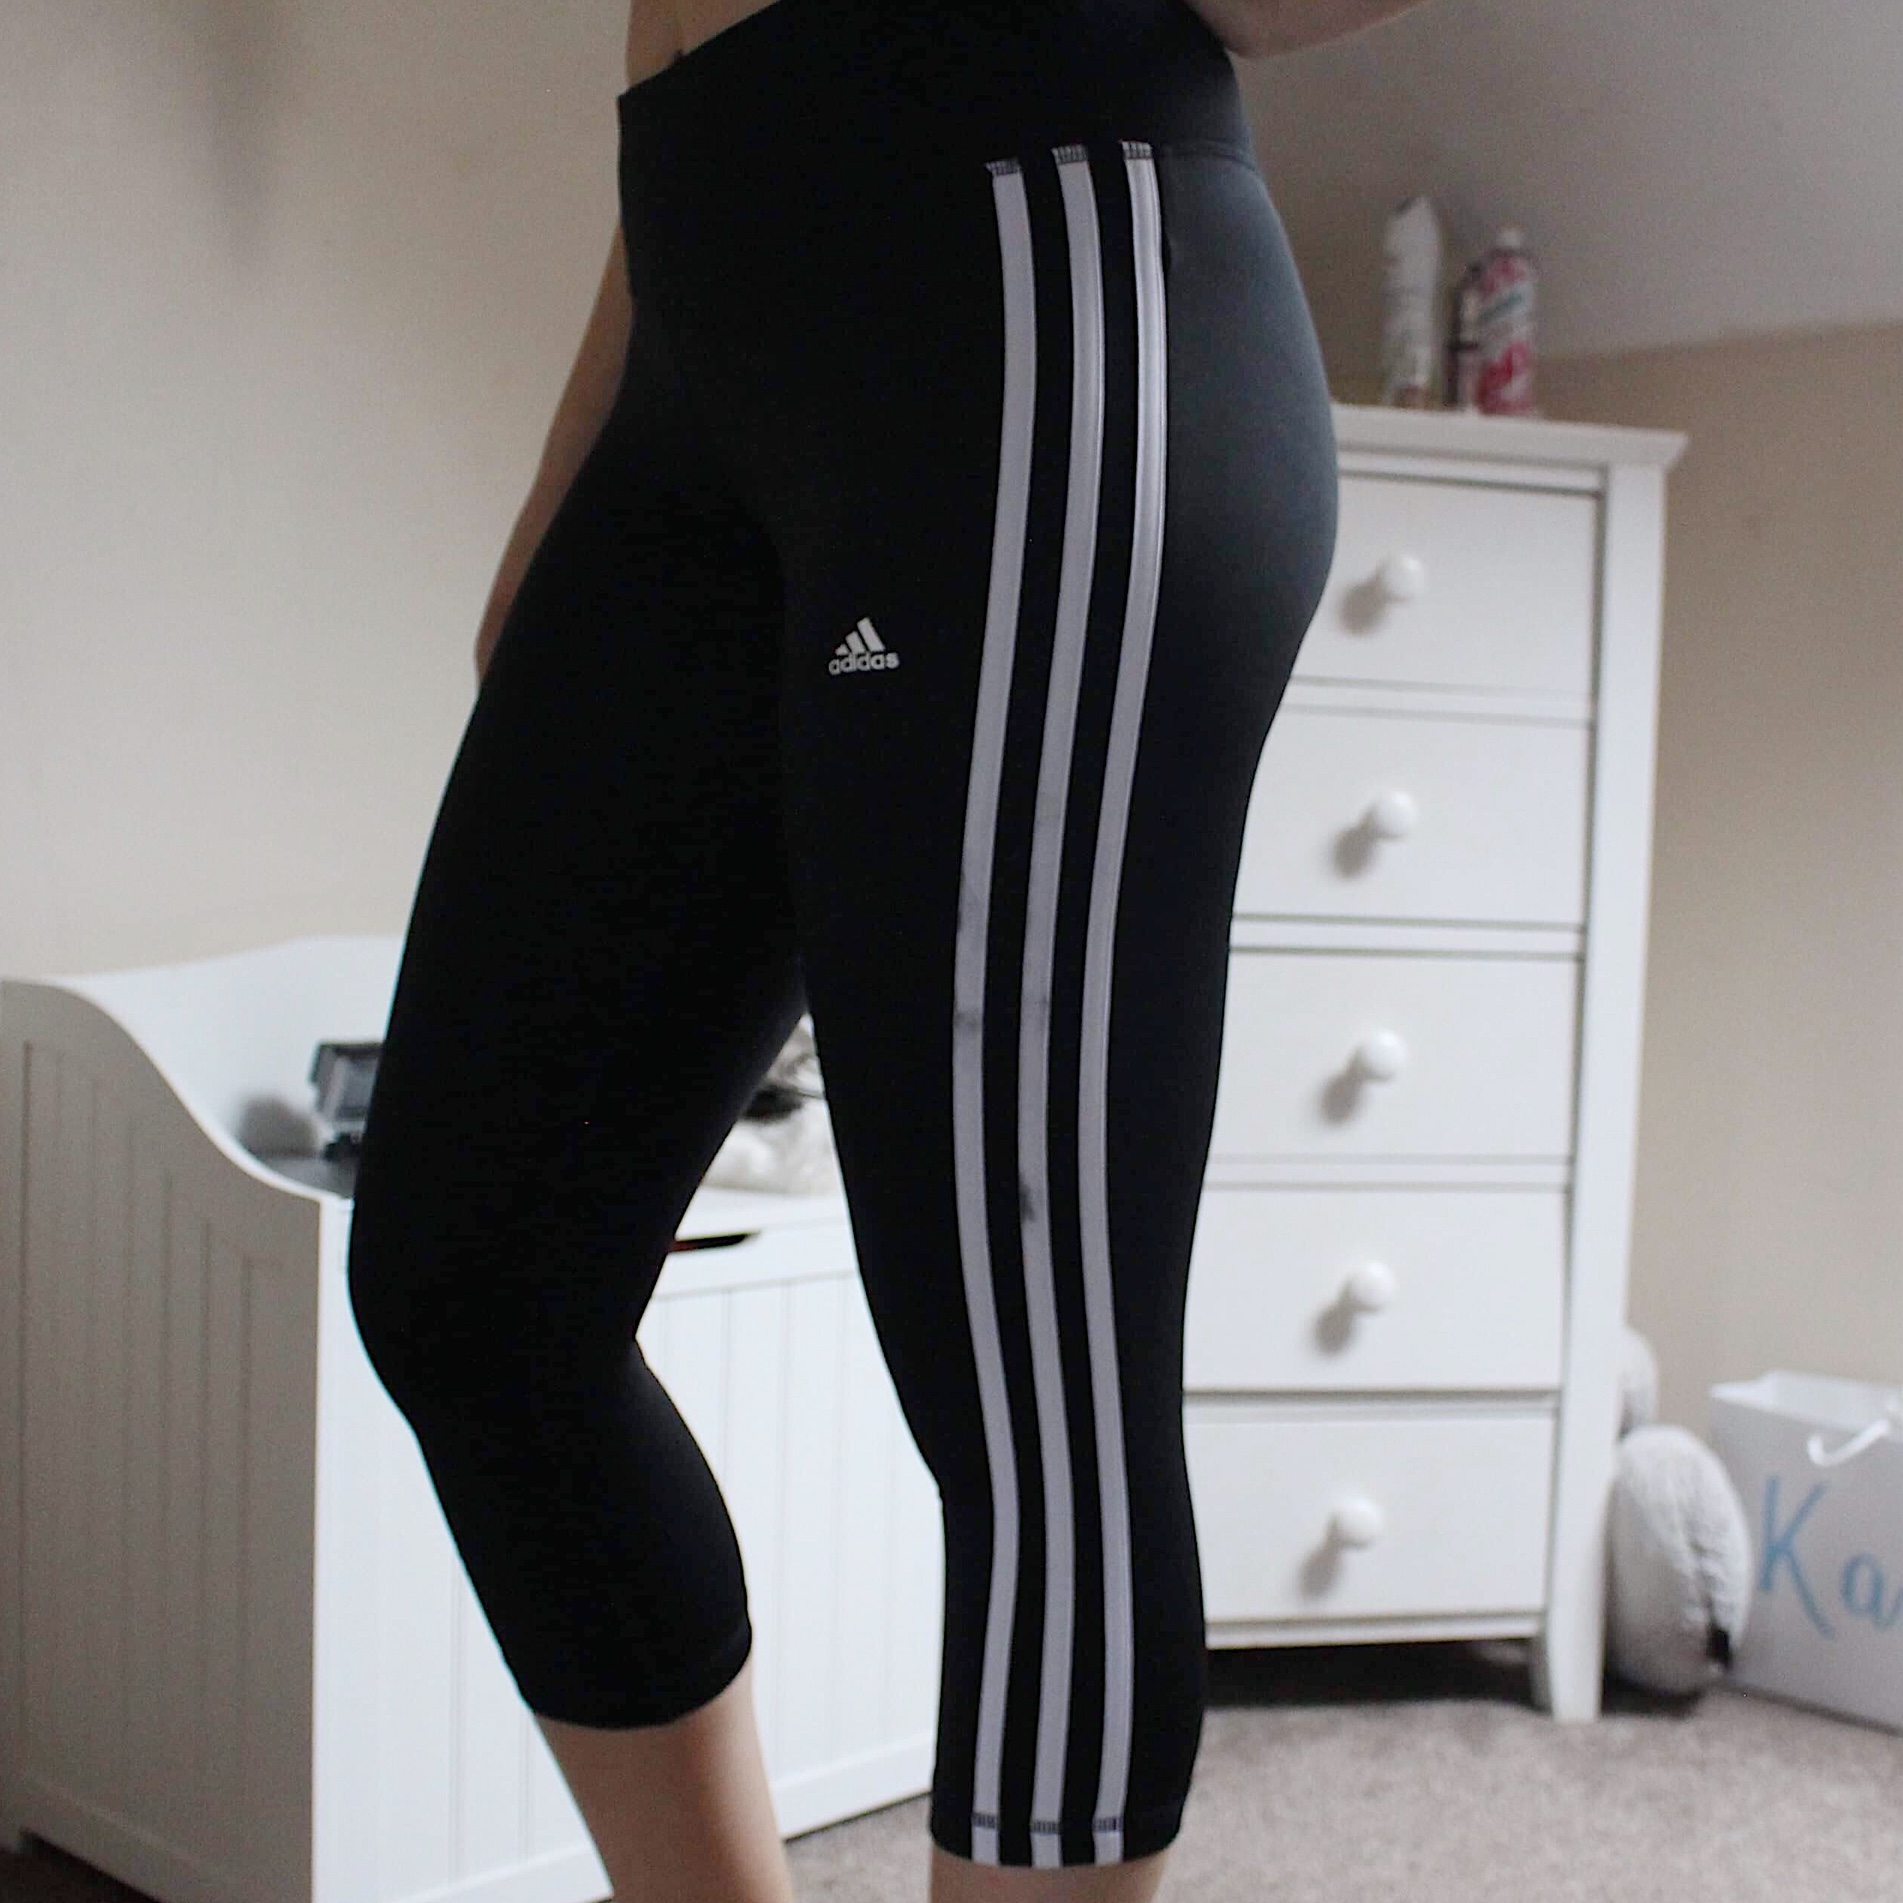 3/4 length adidas leggings